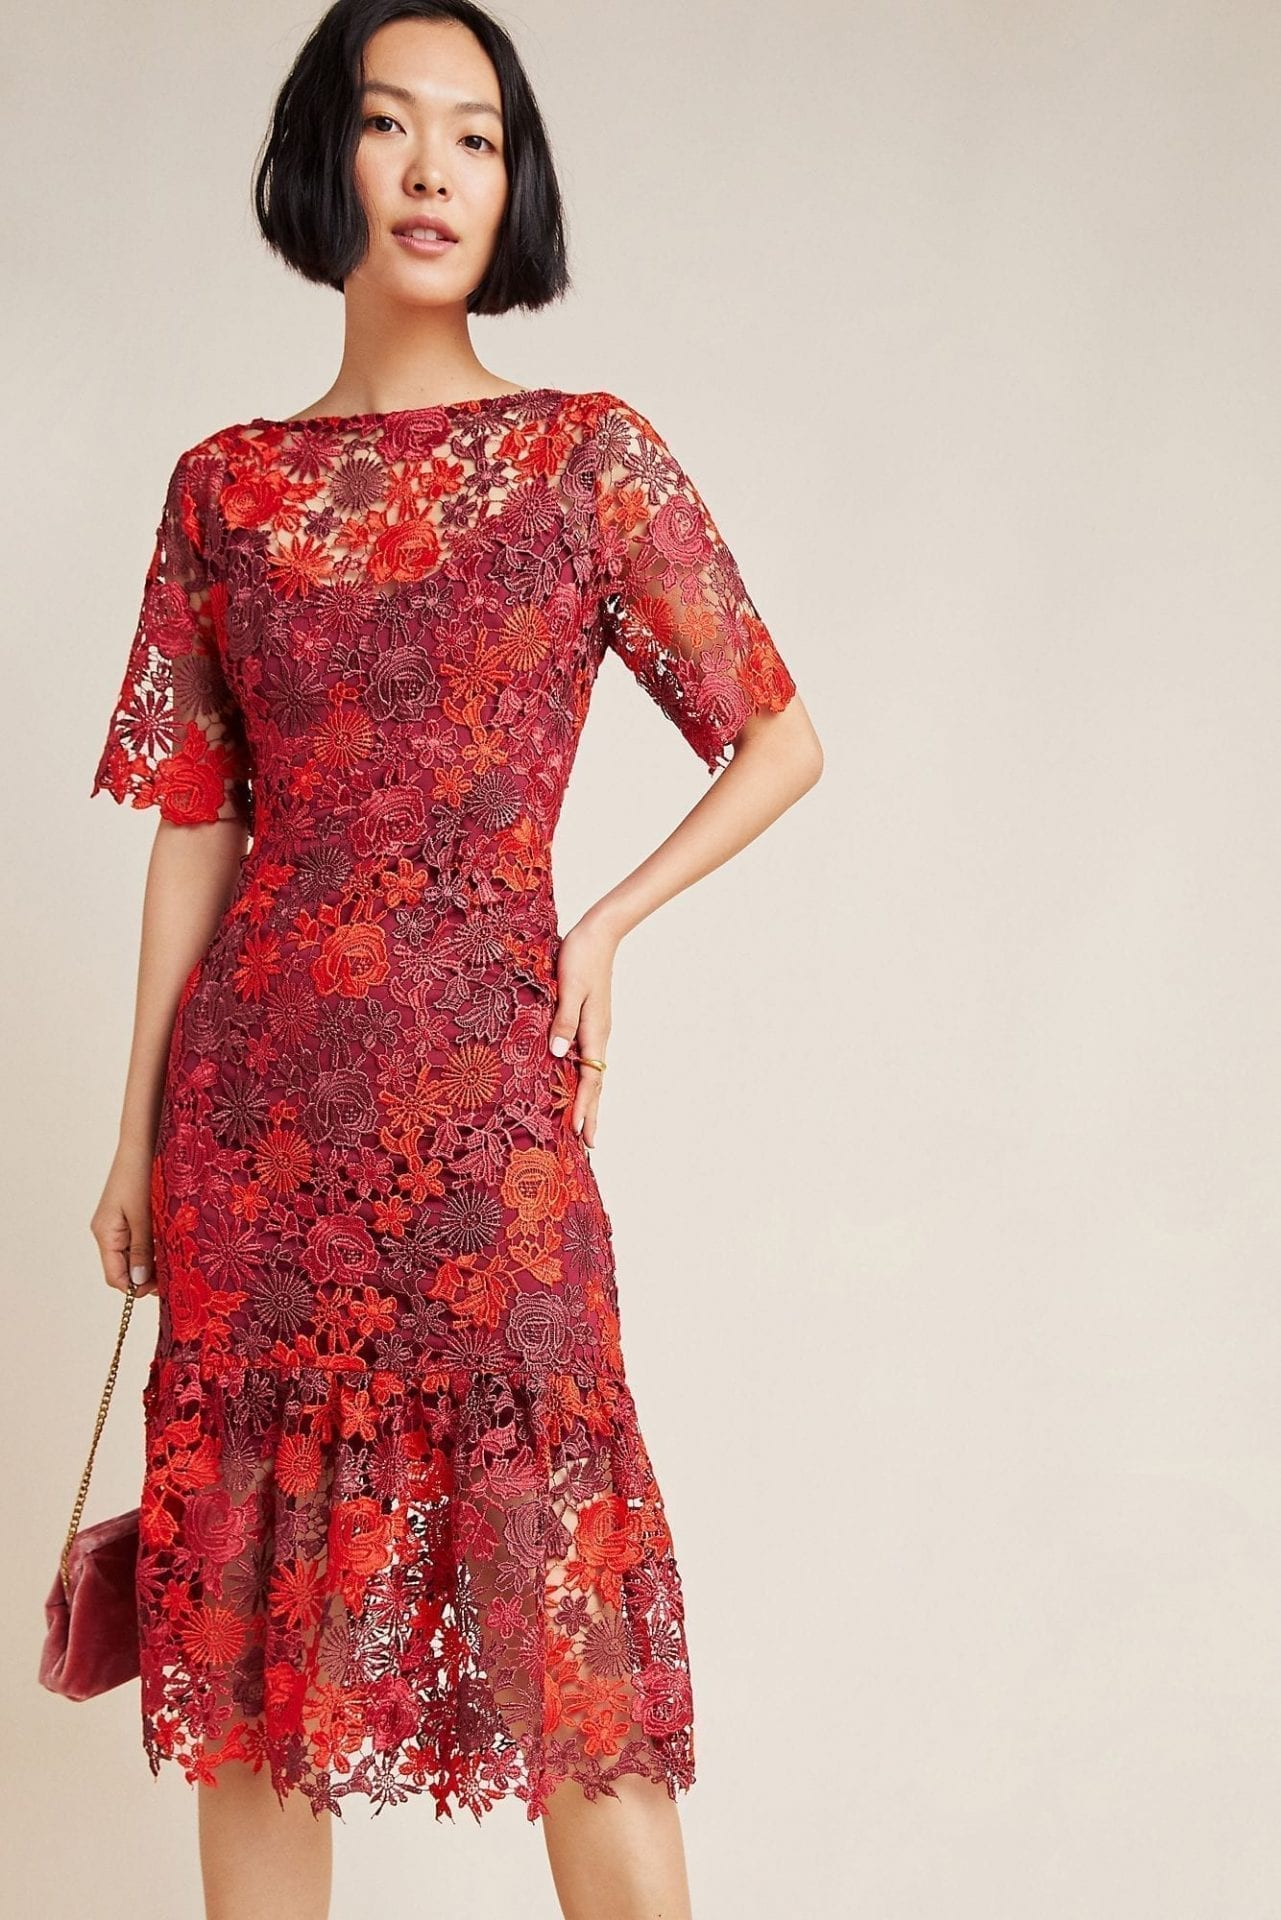 EVA FRANCO Brigitte Embroidered Midi Dress